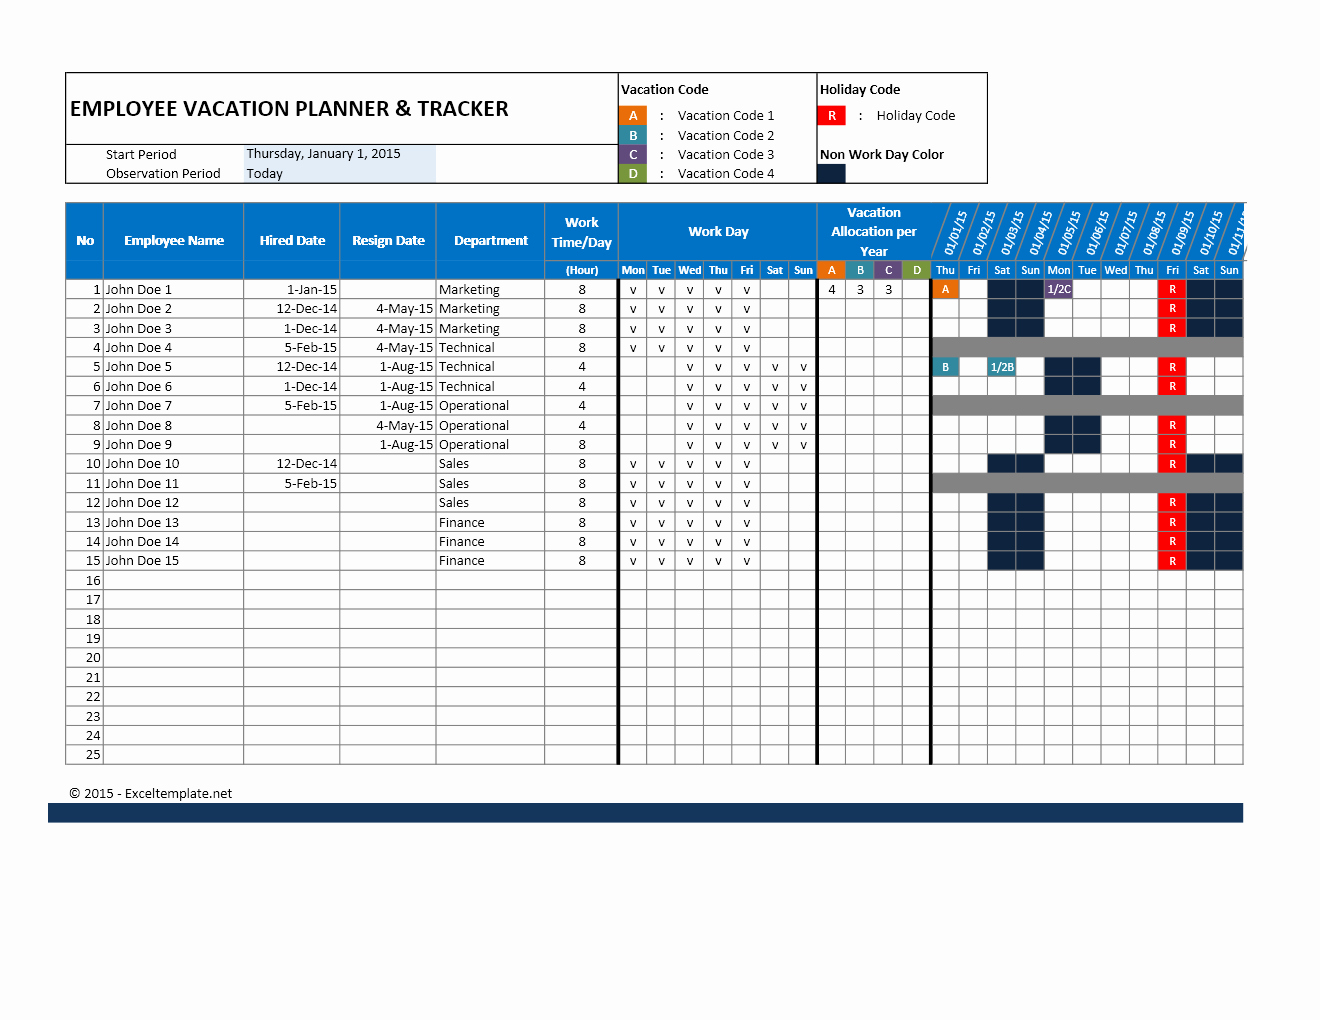 Vacation Schedule Template 2016 Unique Employee attendance Calendar and Vacation Planner